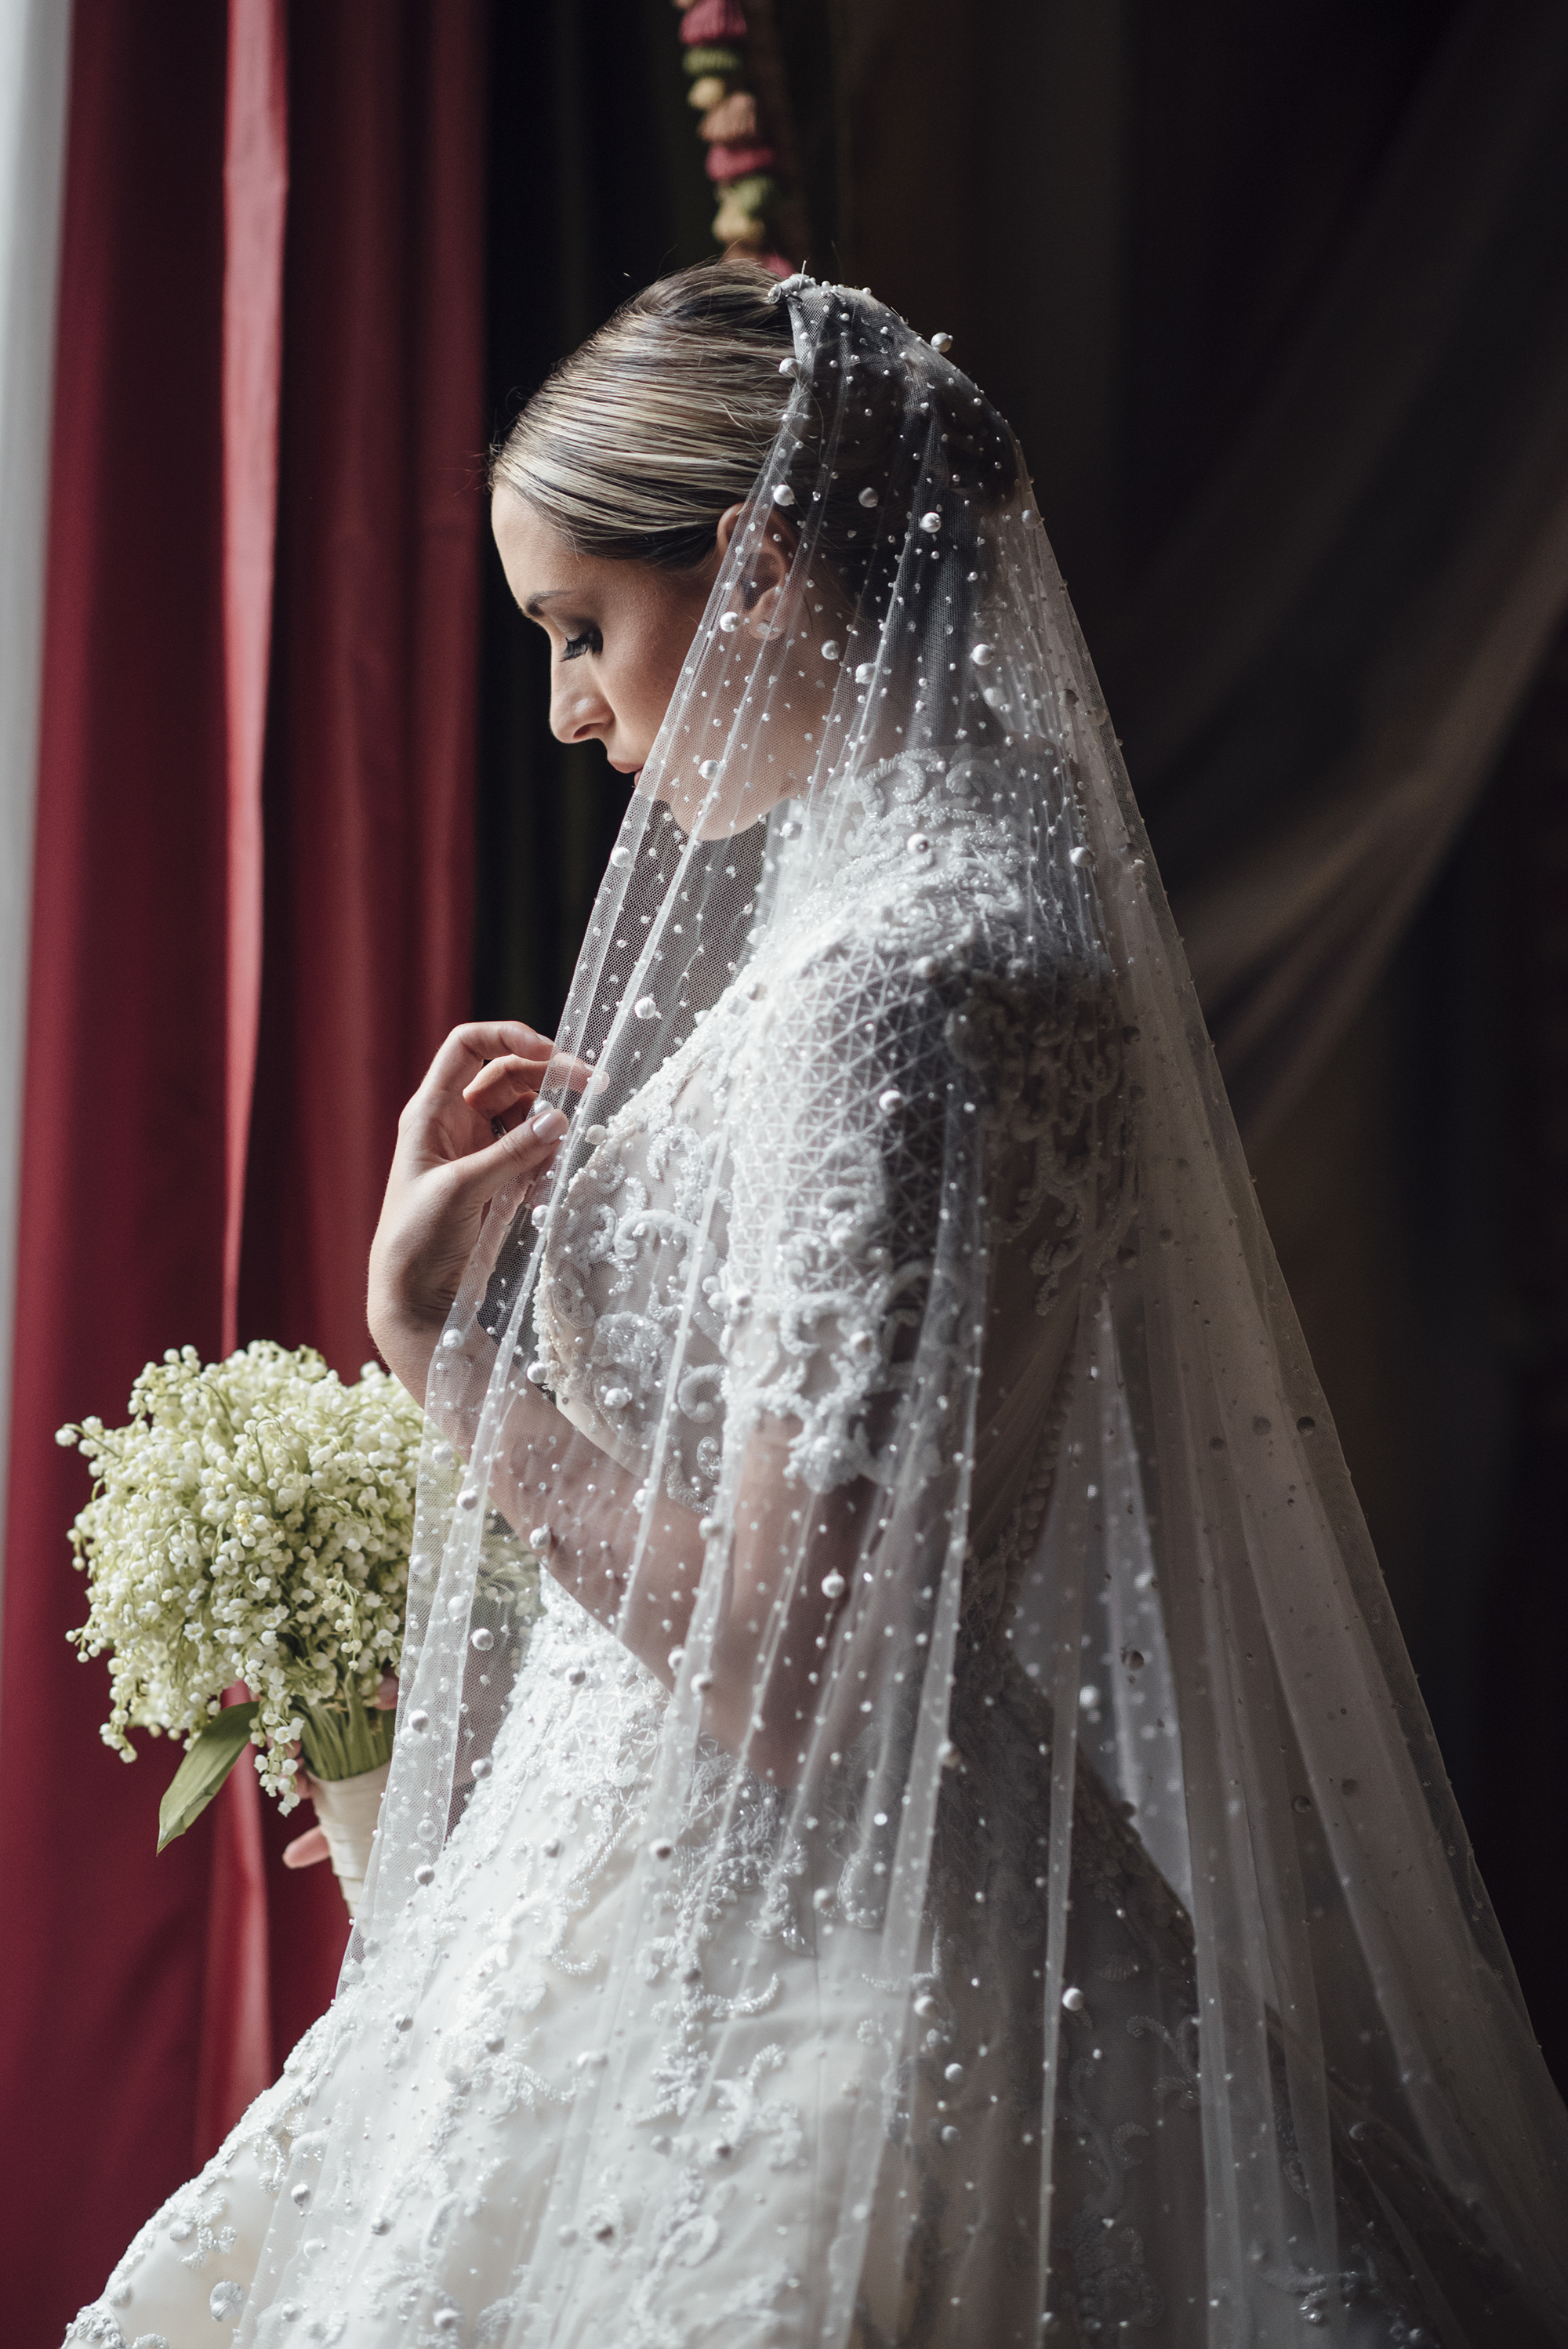 Parts Of A Wedding.Camila S Bride Diary Our Wedding In Florence Part 2